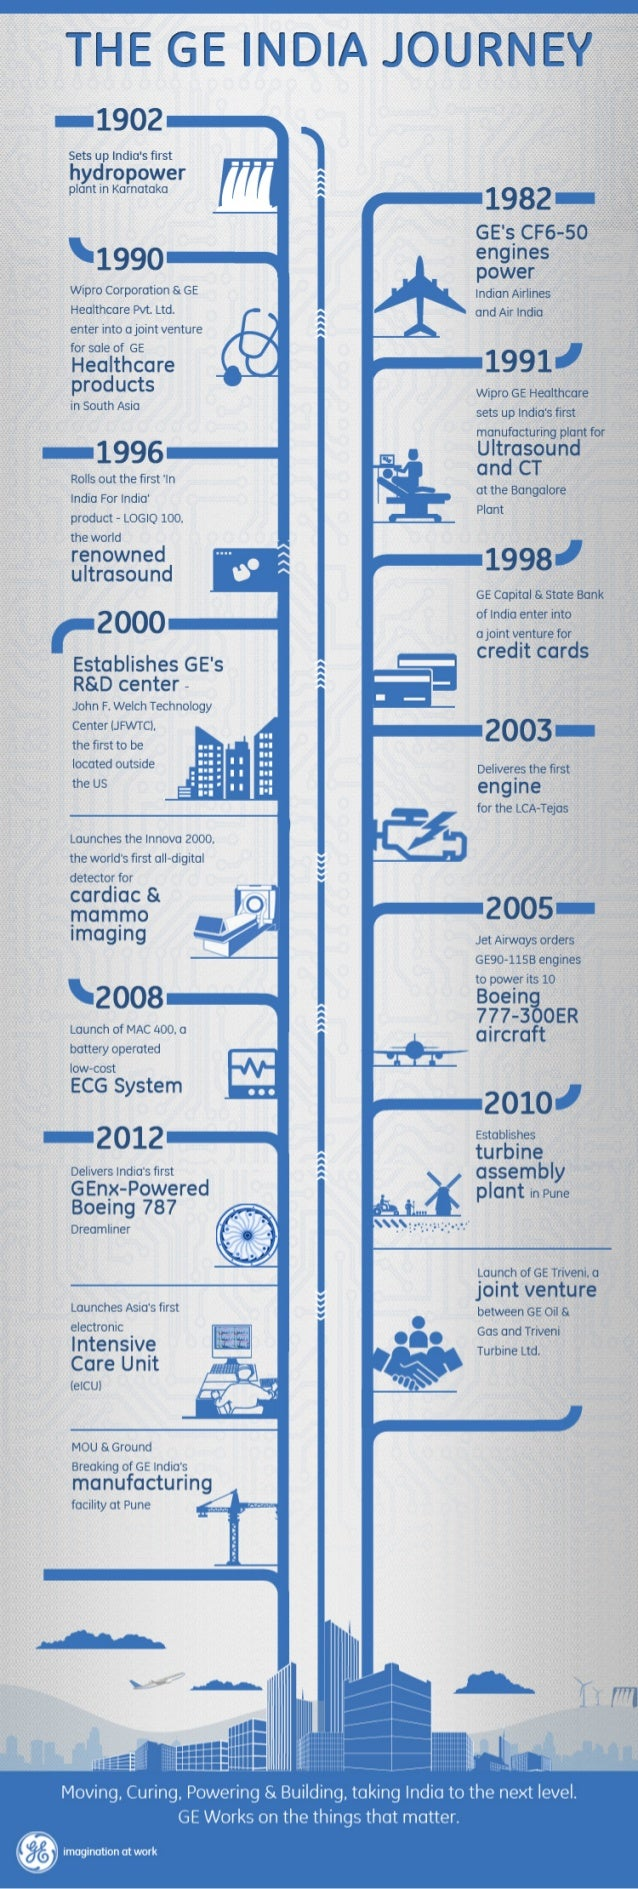 The GE India Journey